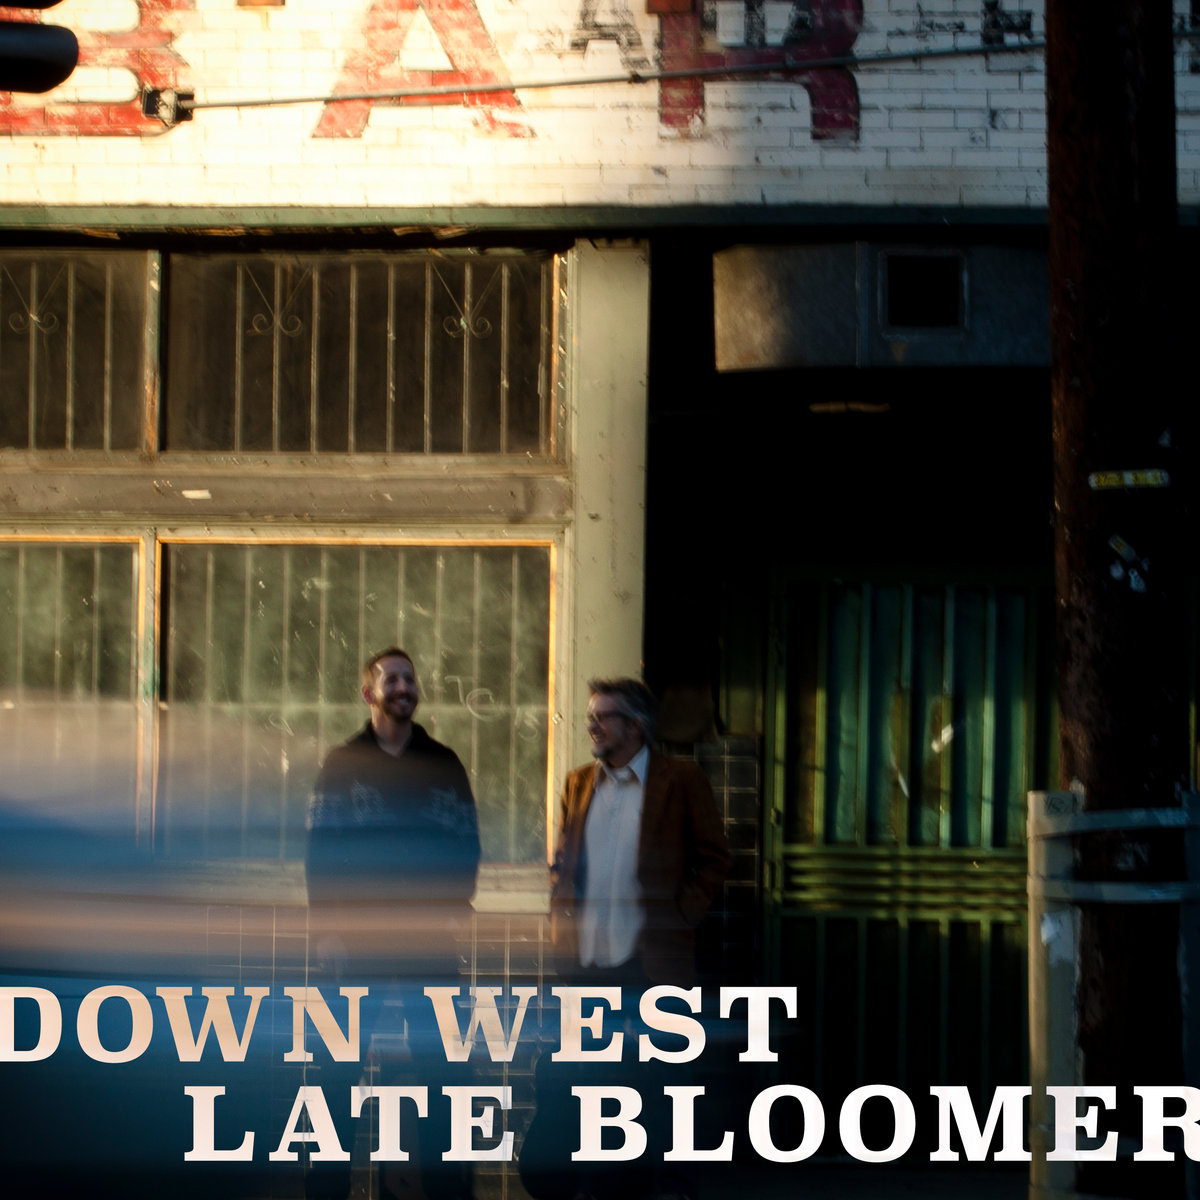 Late Bloomer by Down West